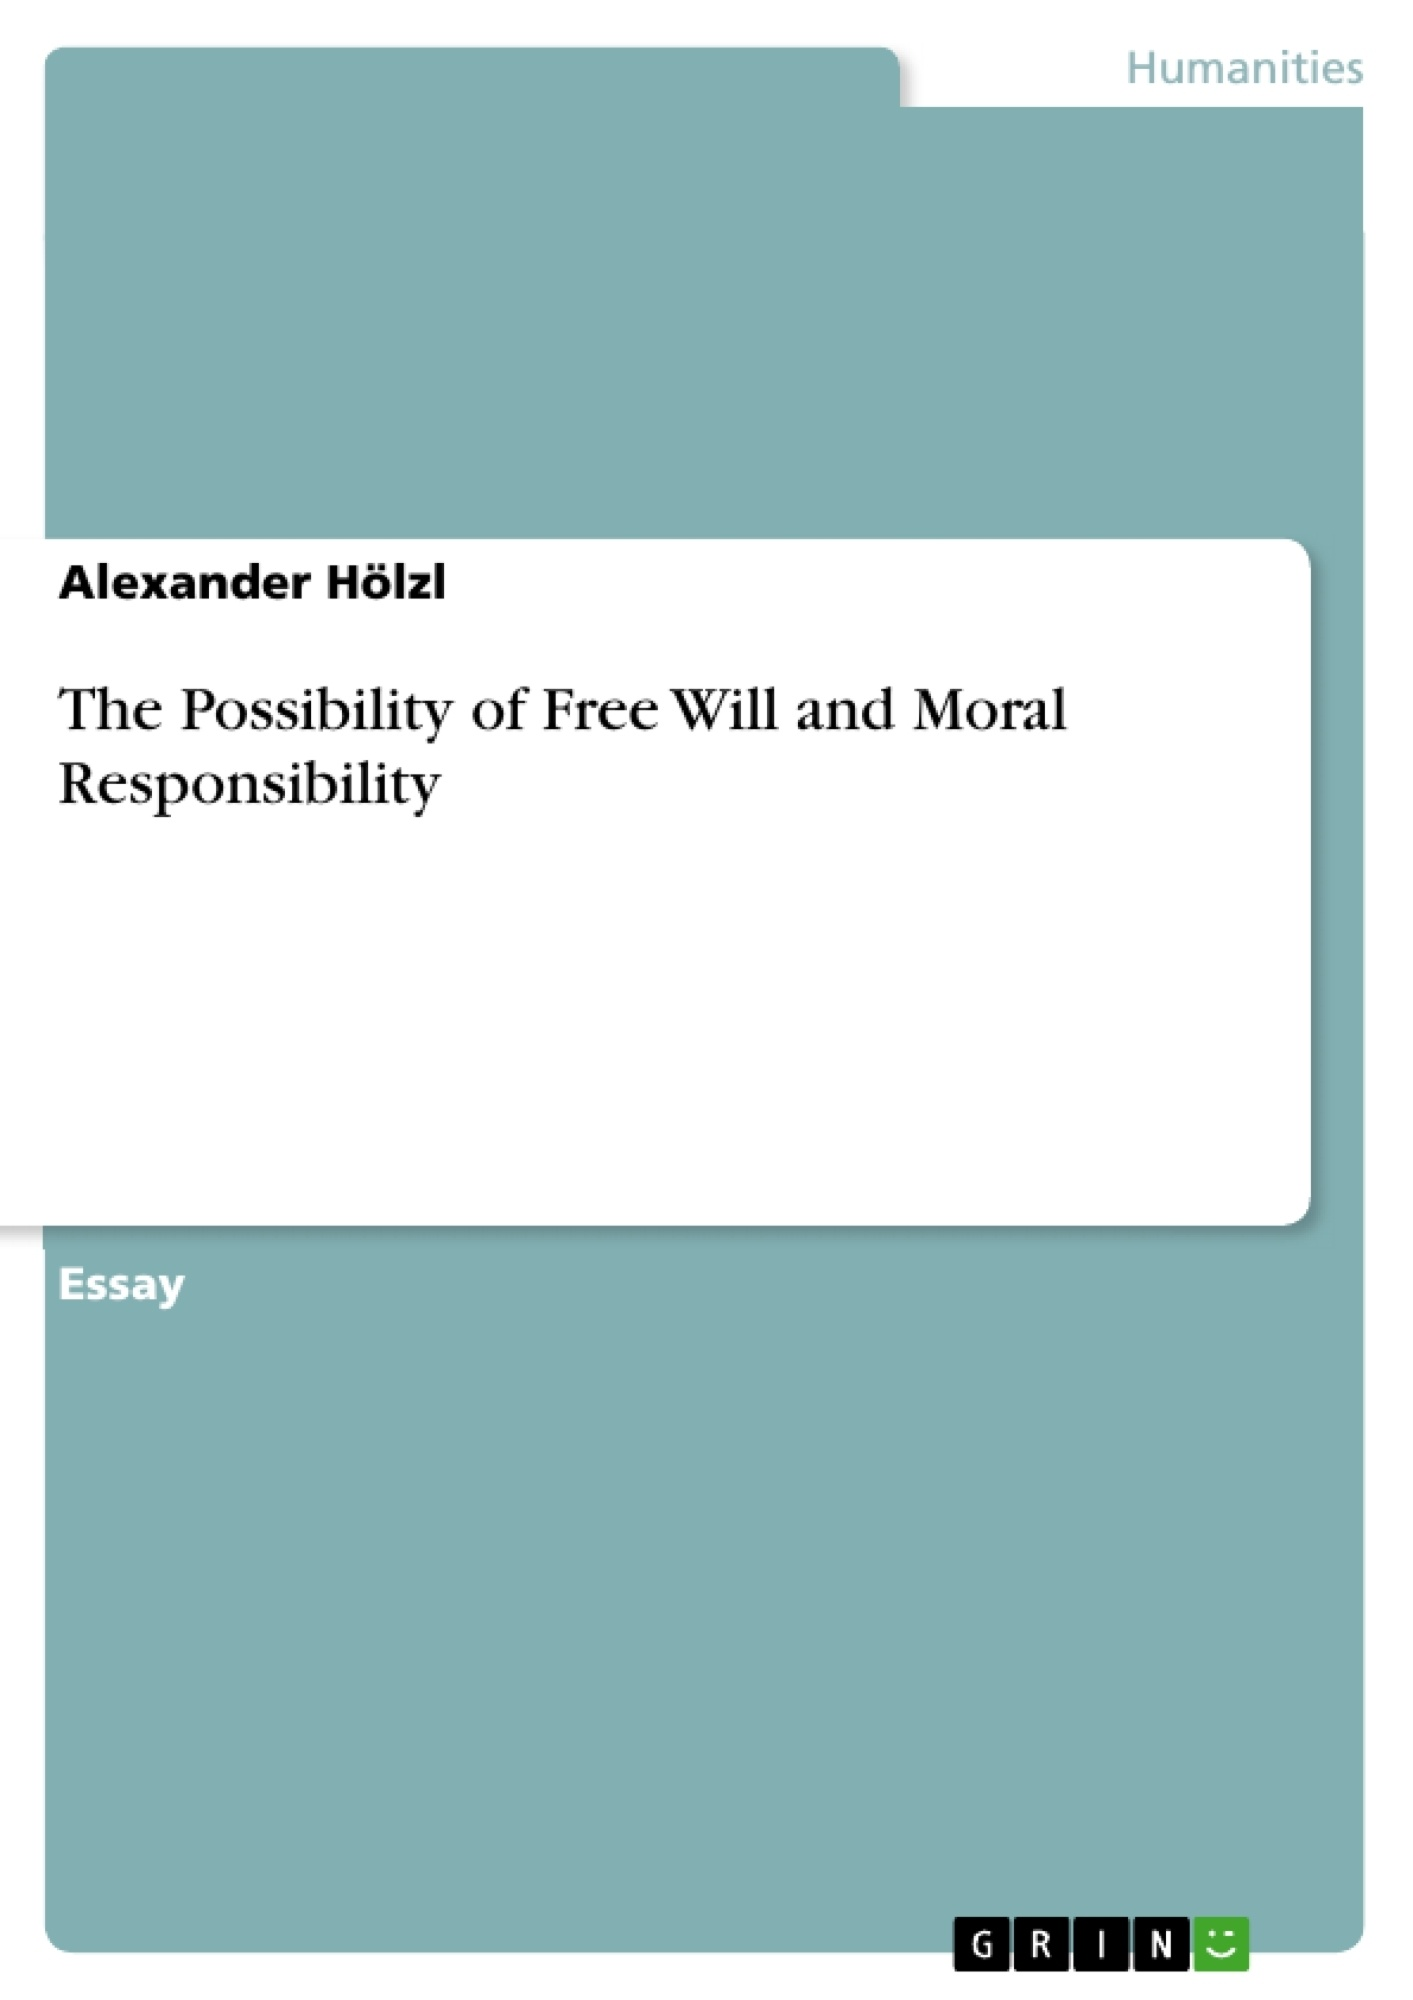 Title: The Possibility of Free Will and Moral Responsibility